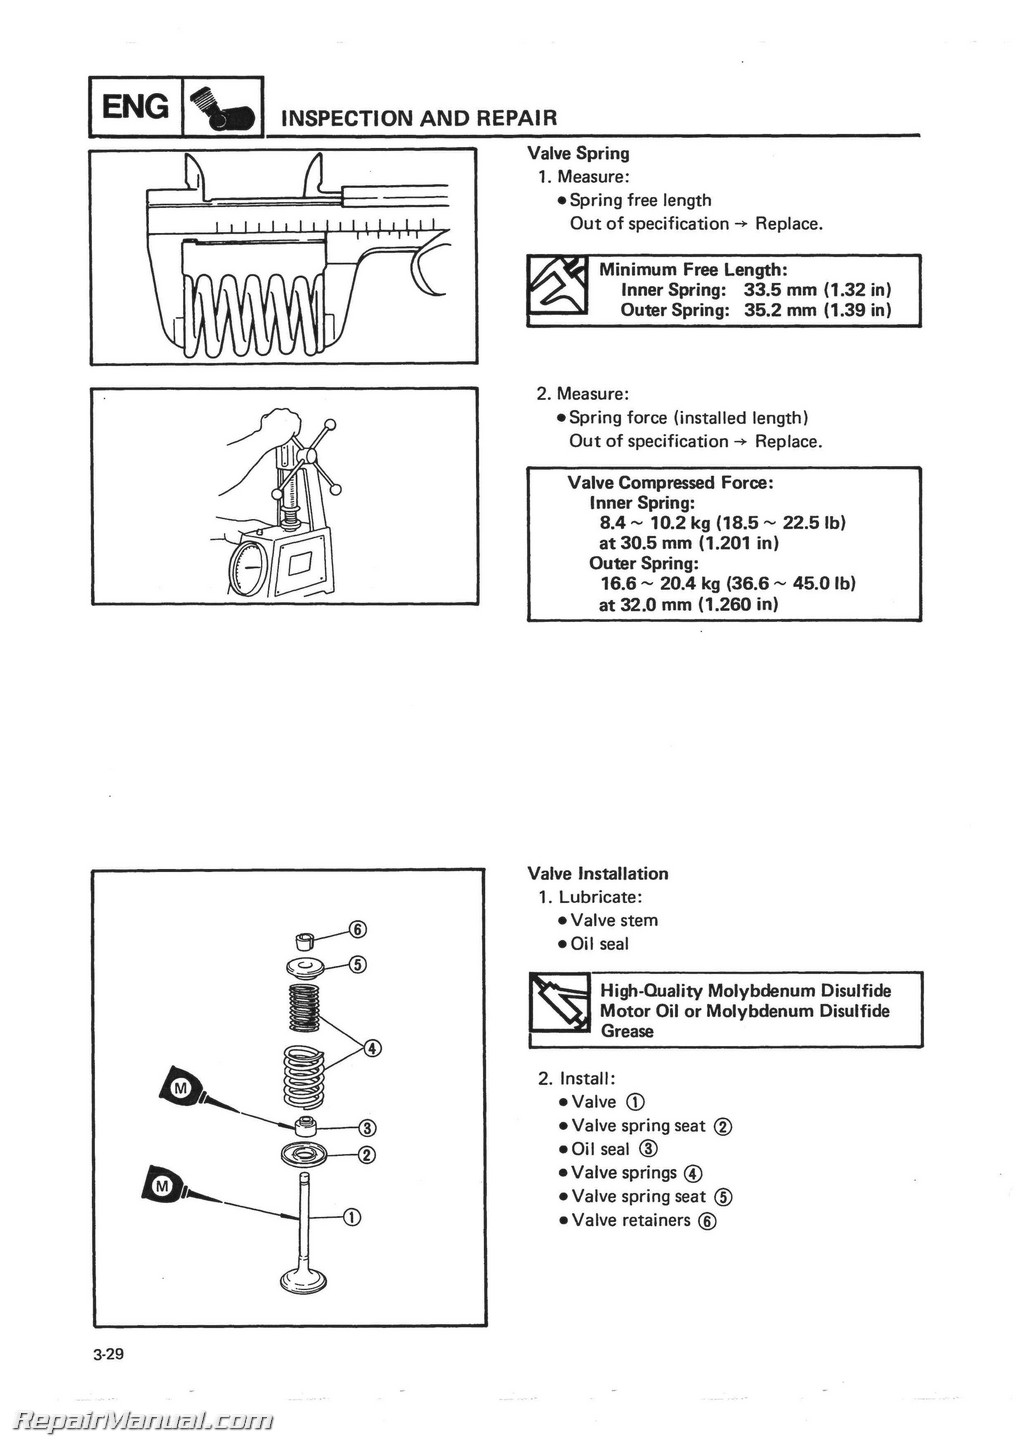 1986 yamaha golf cart wiring diagram    1986    1988    yamaha    yfm225 moto 4 atv printed service manual     1986    1988    yamaha    yfm225 moto 4 atv printed service manual